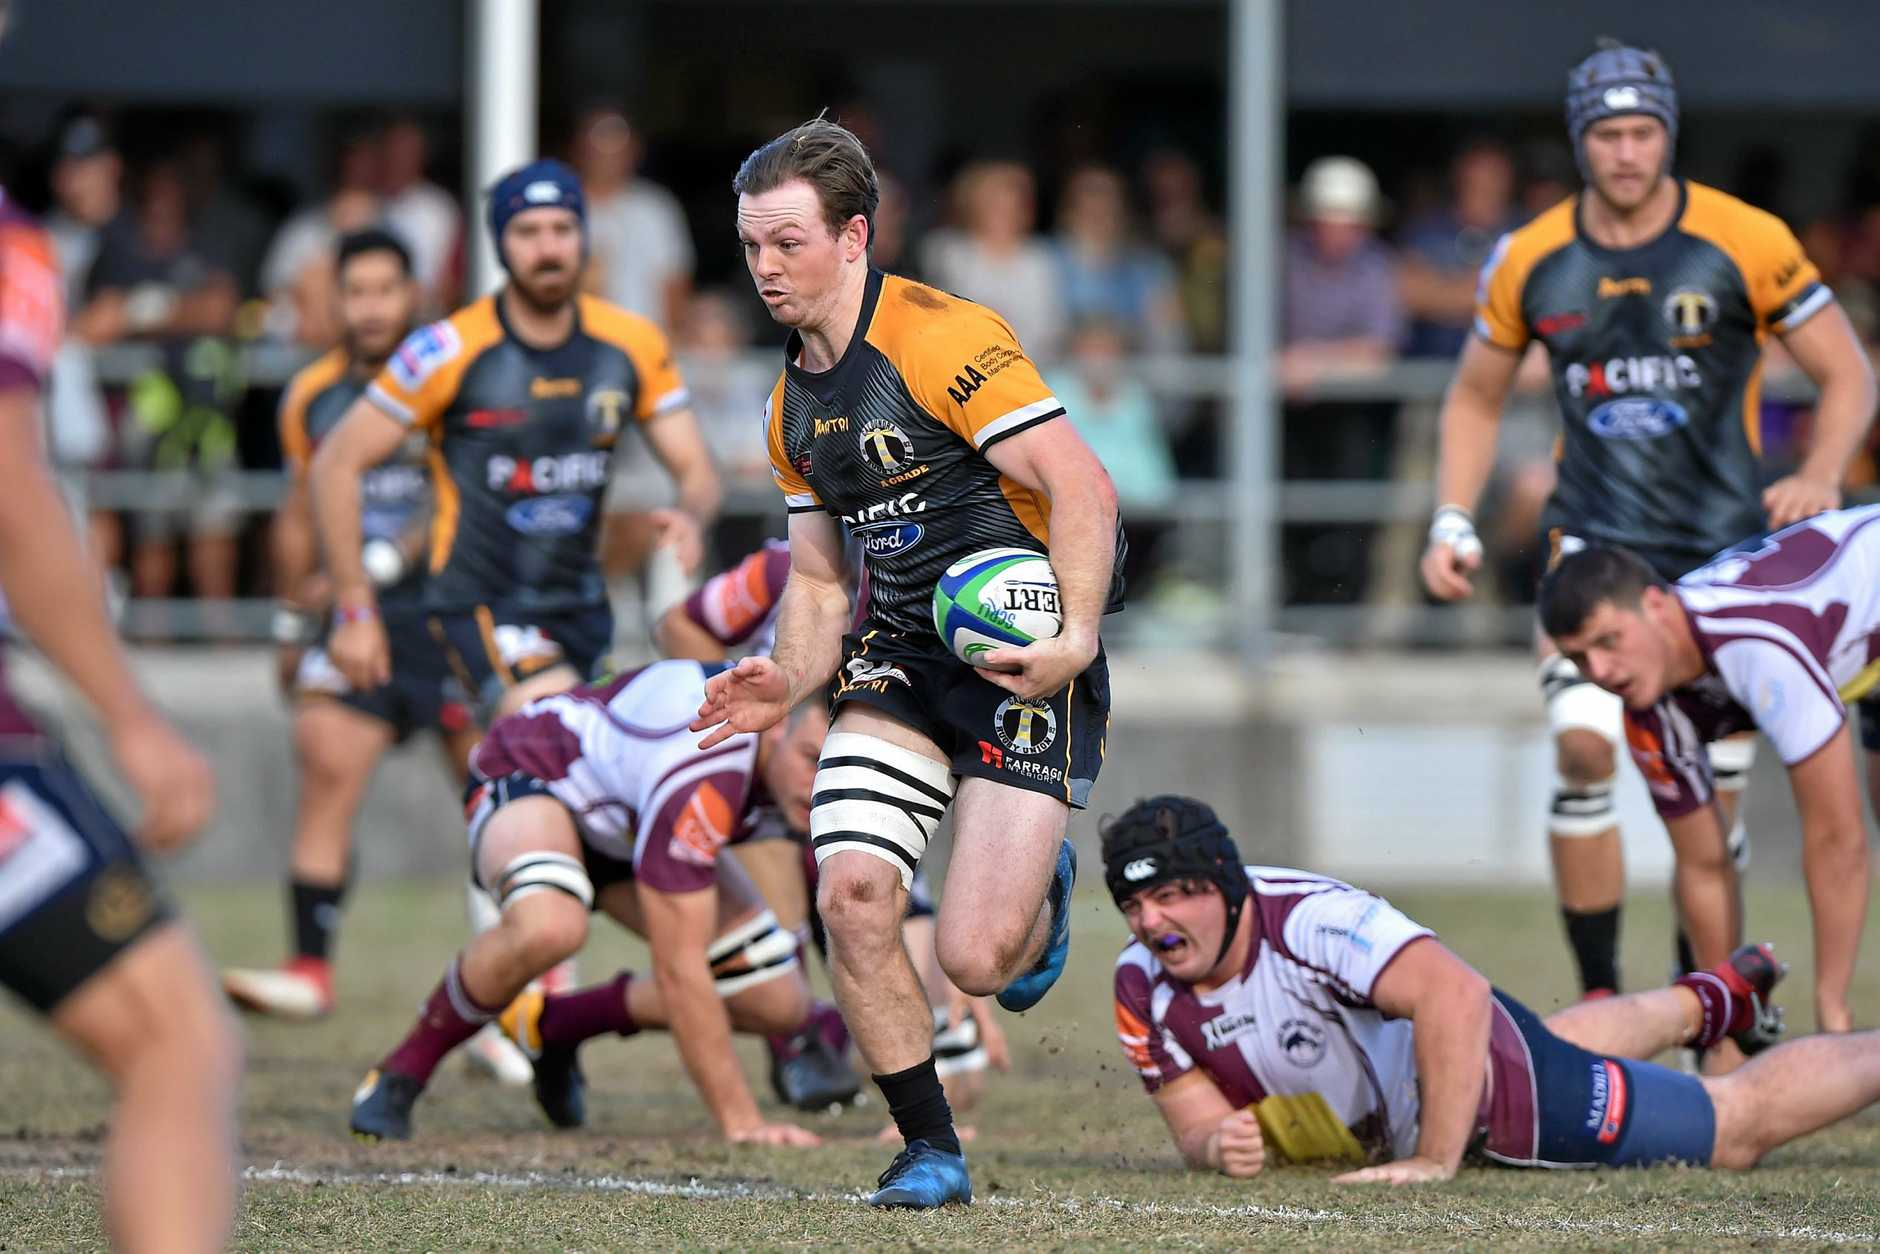 ON THE BURST: Caloundra's Mackenzie Burgess splits the defence during the grand final.